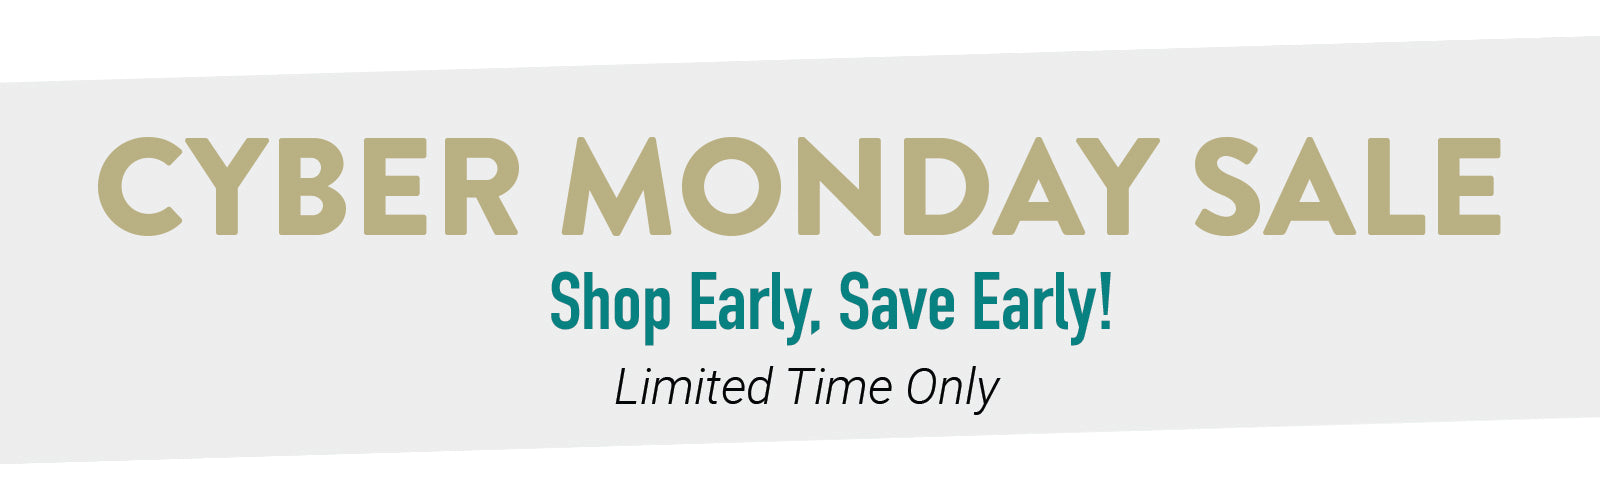 Cyber Monday Sale at Yellow Mountain Imports: Up to 25% Off Various Items